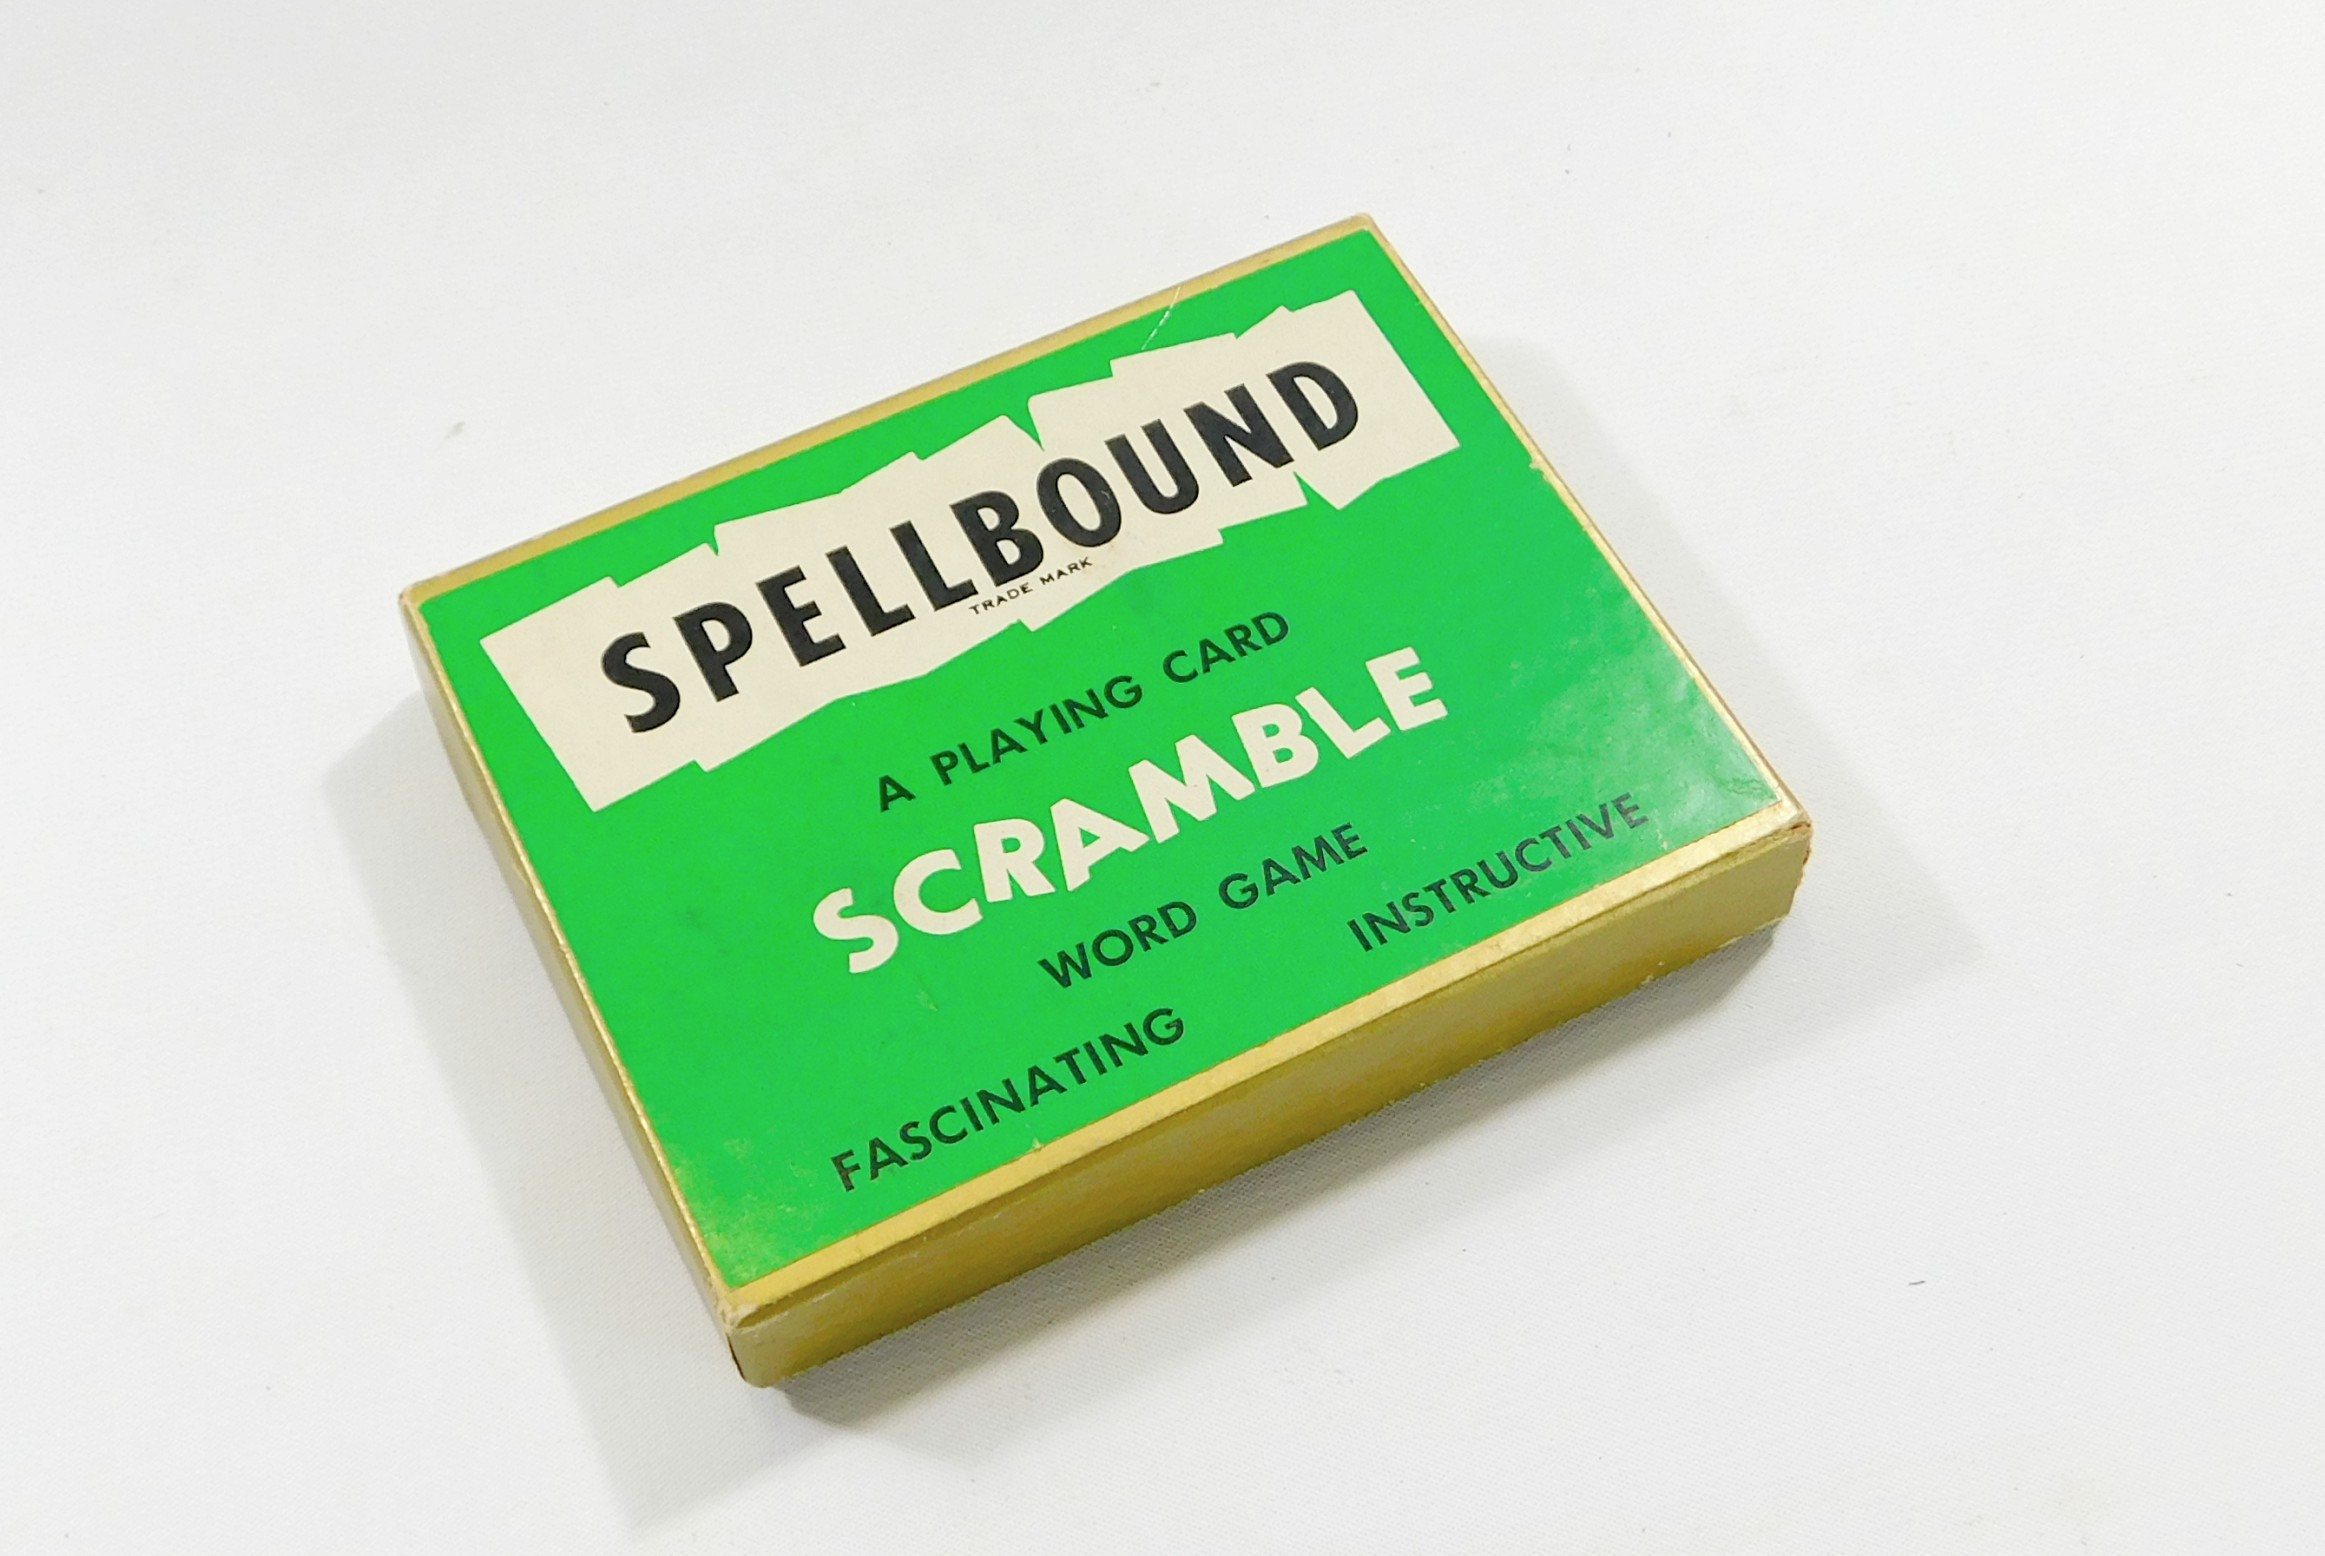 spellbound card game